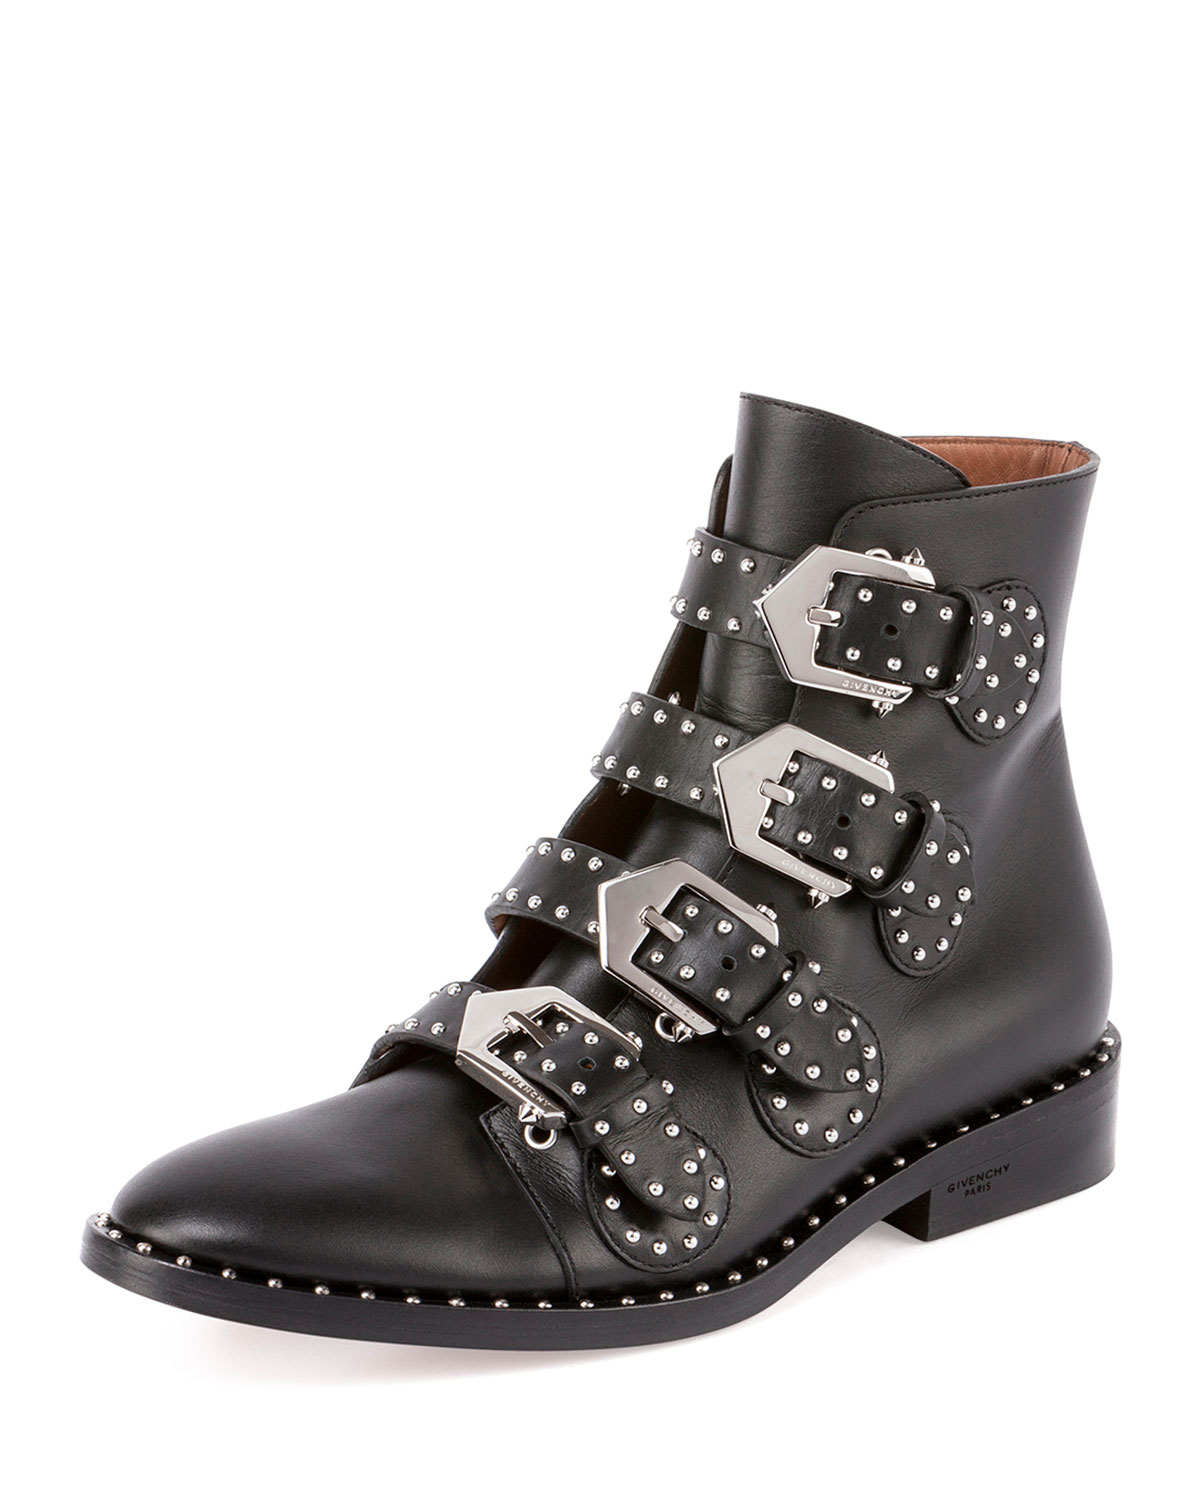 Givenchy Studded Leather Ankle Boot in Black